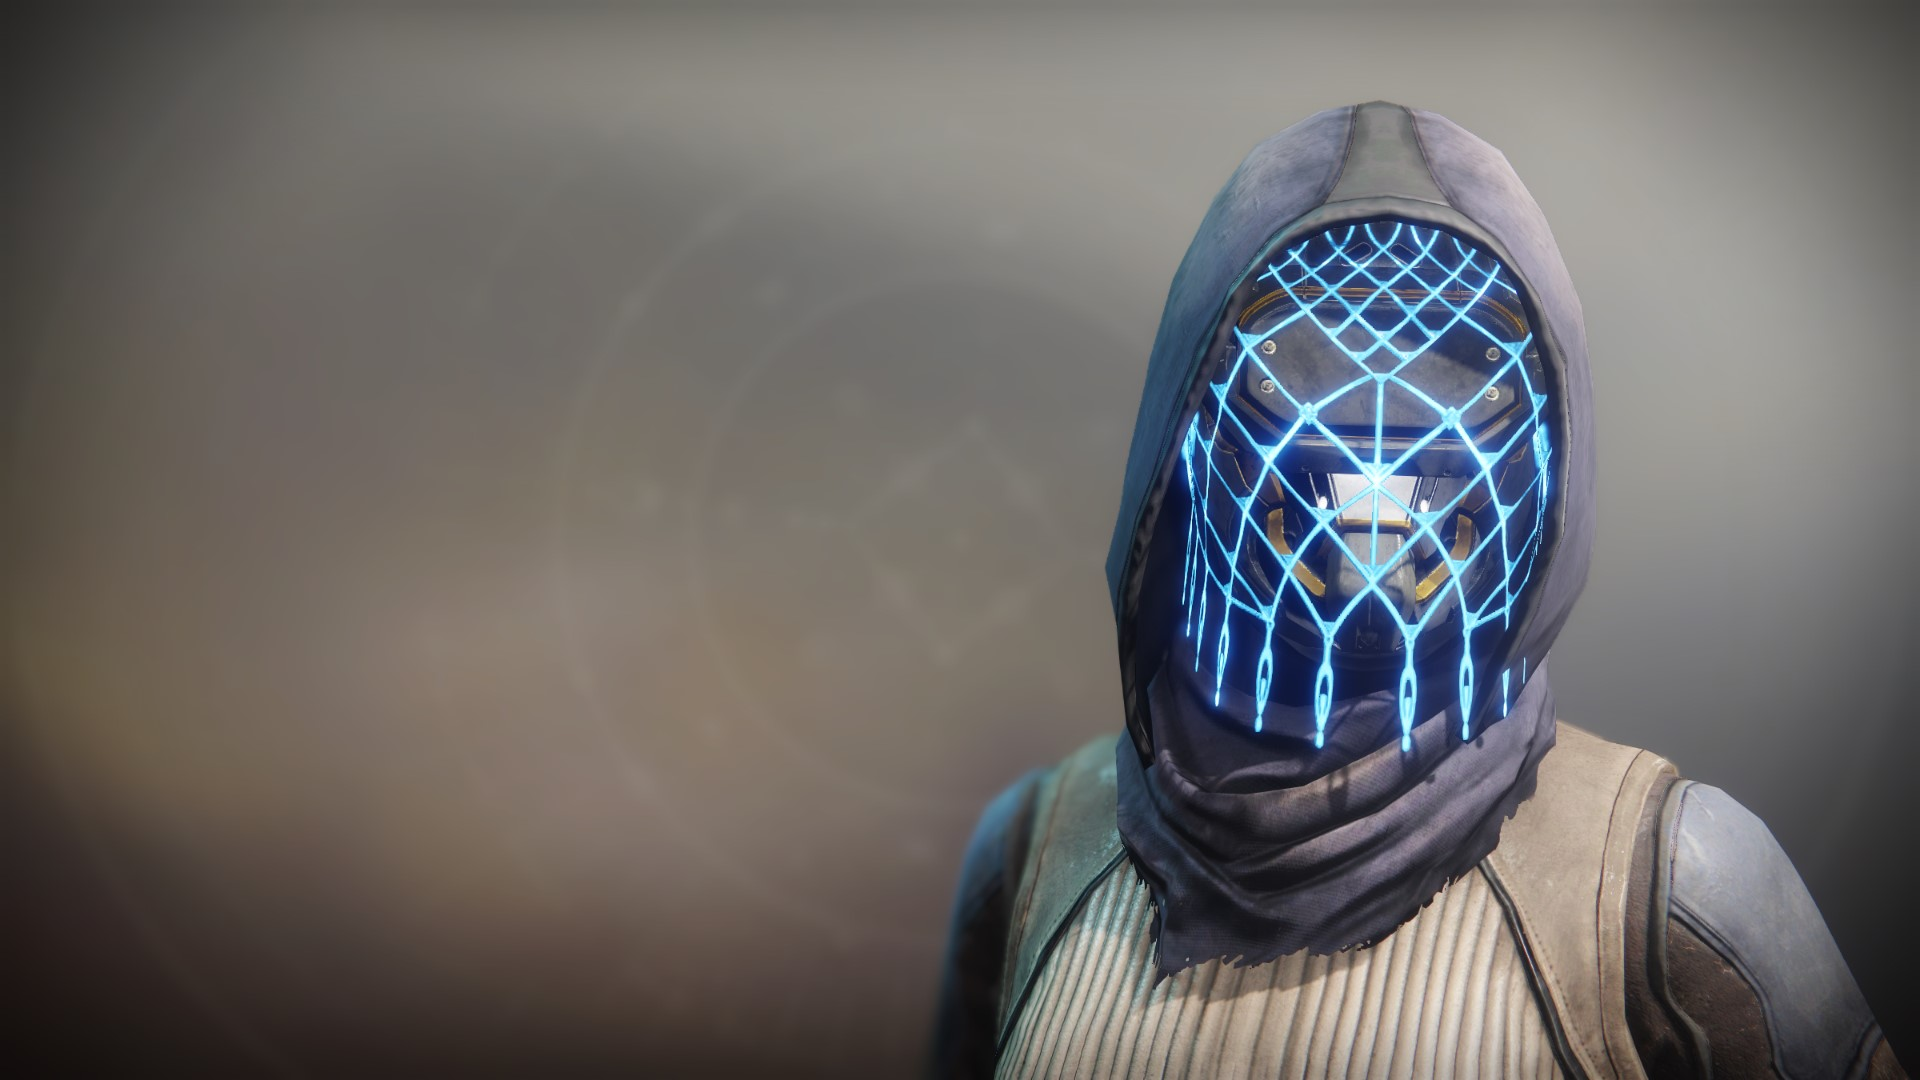 Xur Collective Hunter Armour We have disabled this exotic until a fix can be deployed at a later date. xur collective hunter armour